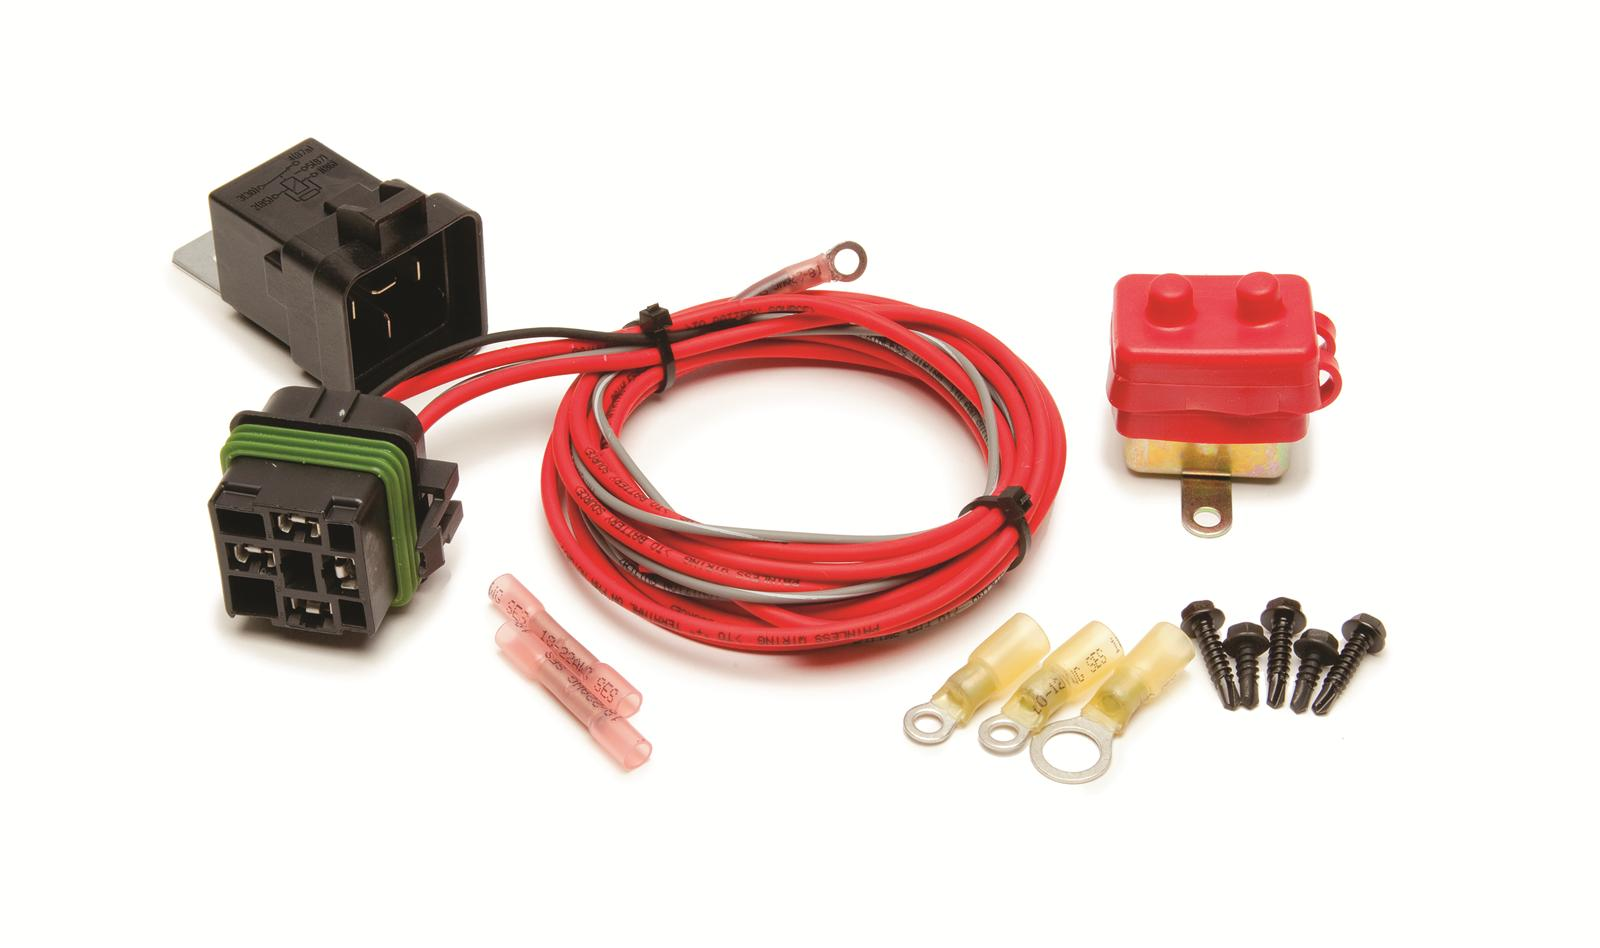 Painless Performance Weatherproof Electric Fan Relay Kits 30130 - Free  Shipping on Orders Over $99 at Summit Racing